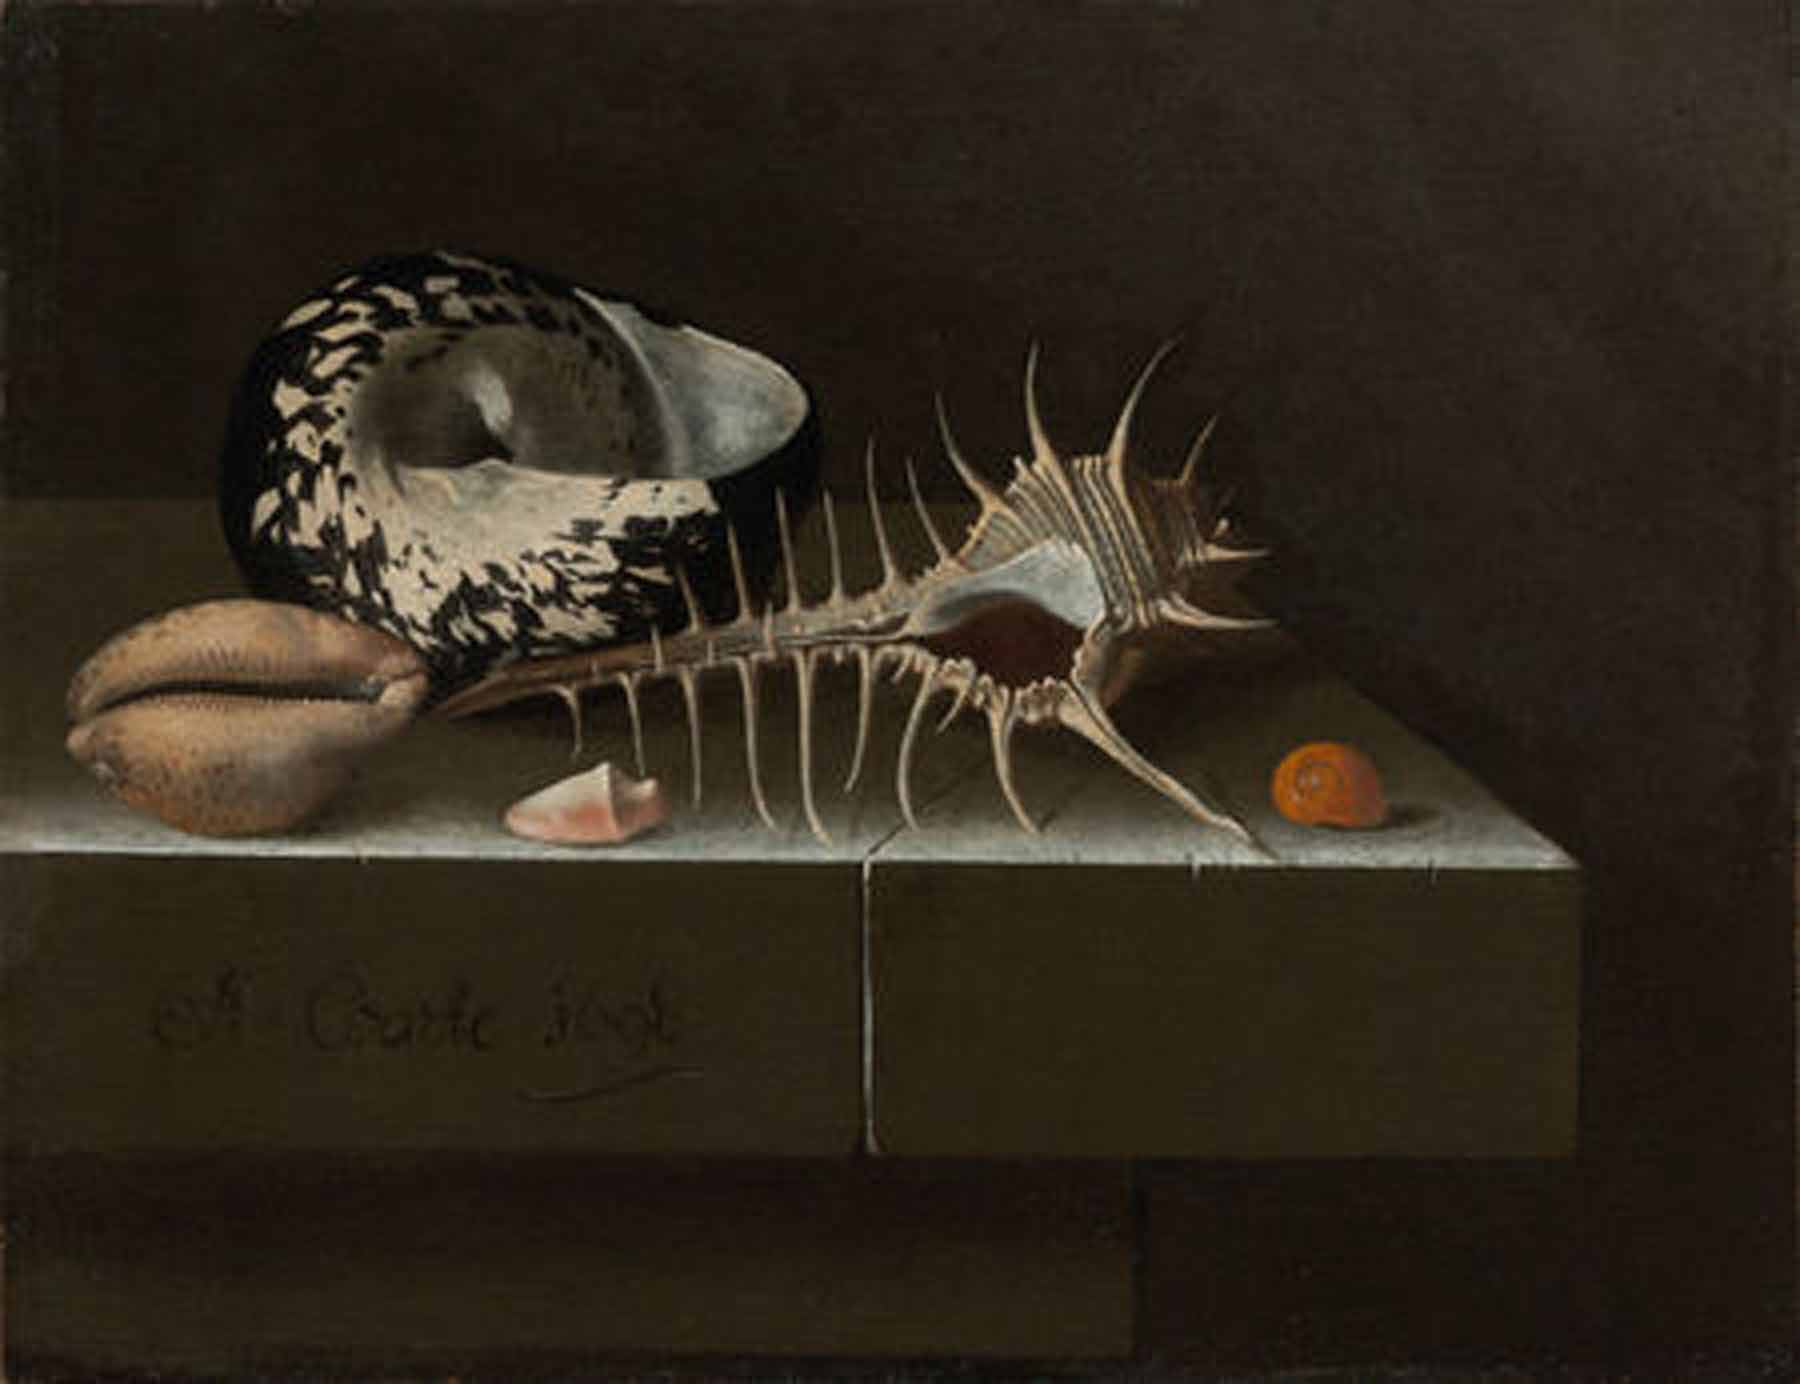 Adriaen Coorte (1659/1664–1707). Still Life with Seashells, 1698. Oil on paper mounted on panel. 6 3/4 × 8 3/4 inches (17.2 × 22.2 cm). The Rose-Marie and Eijk van Otterloo Collection. Image courtesy Museum of Fine Arts, Boston